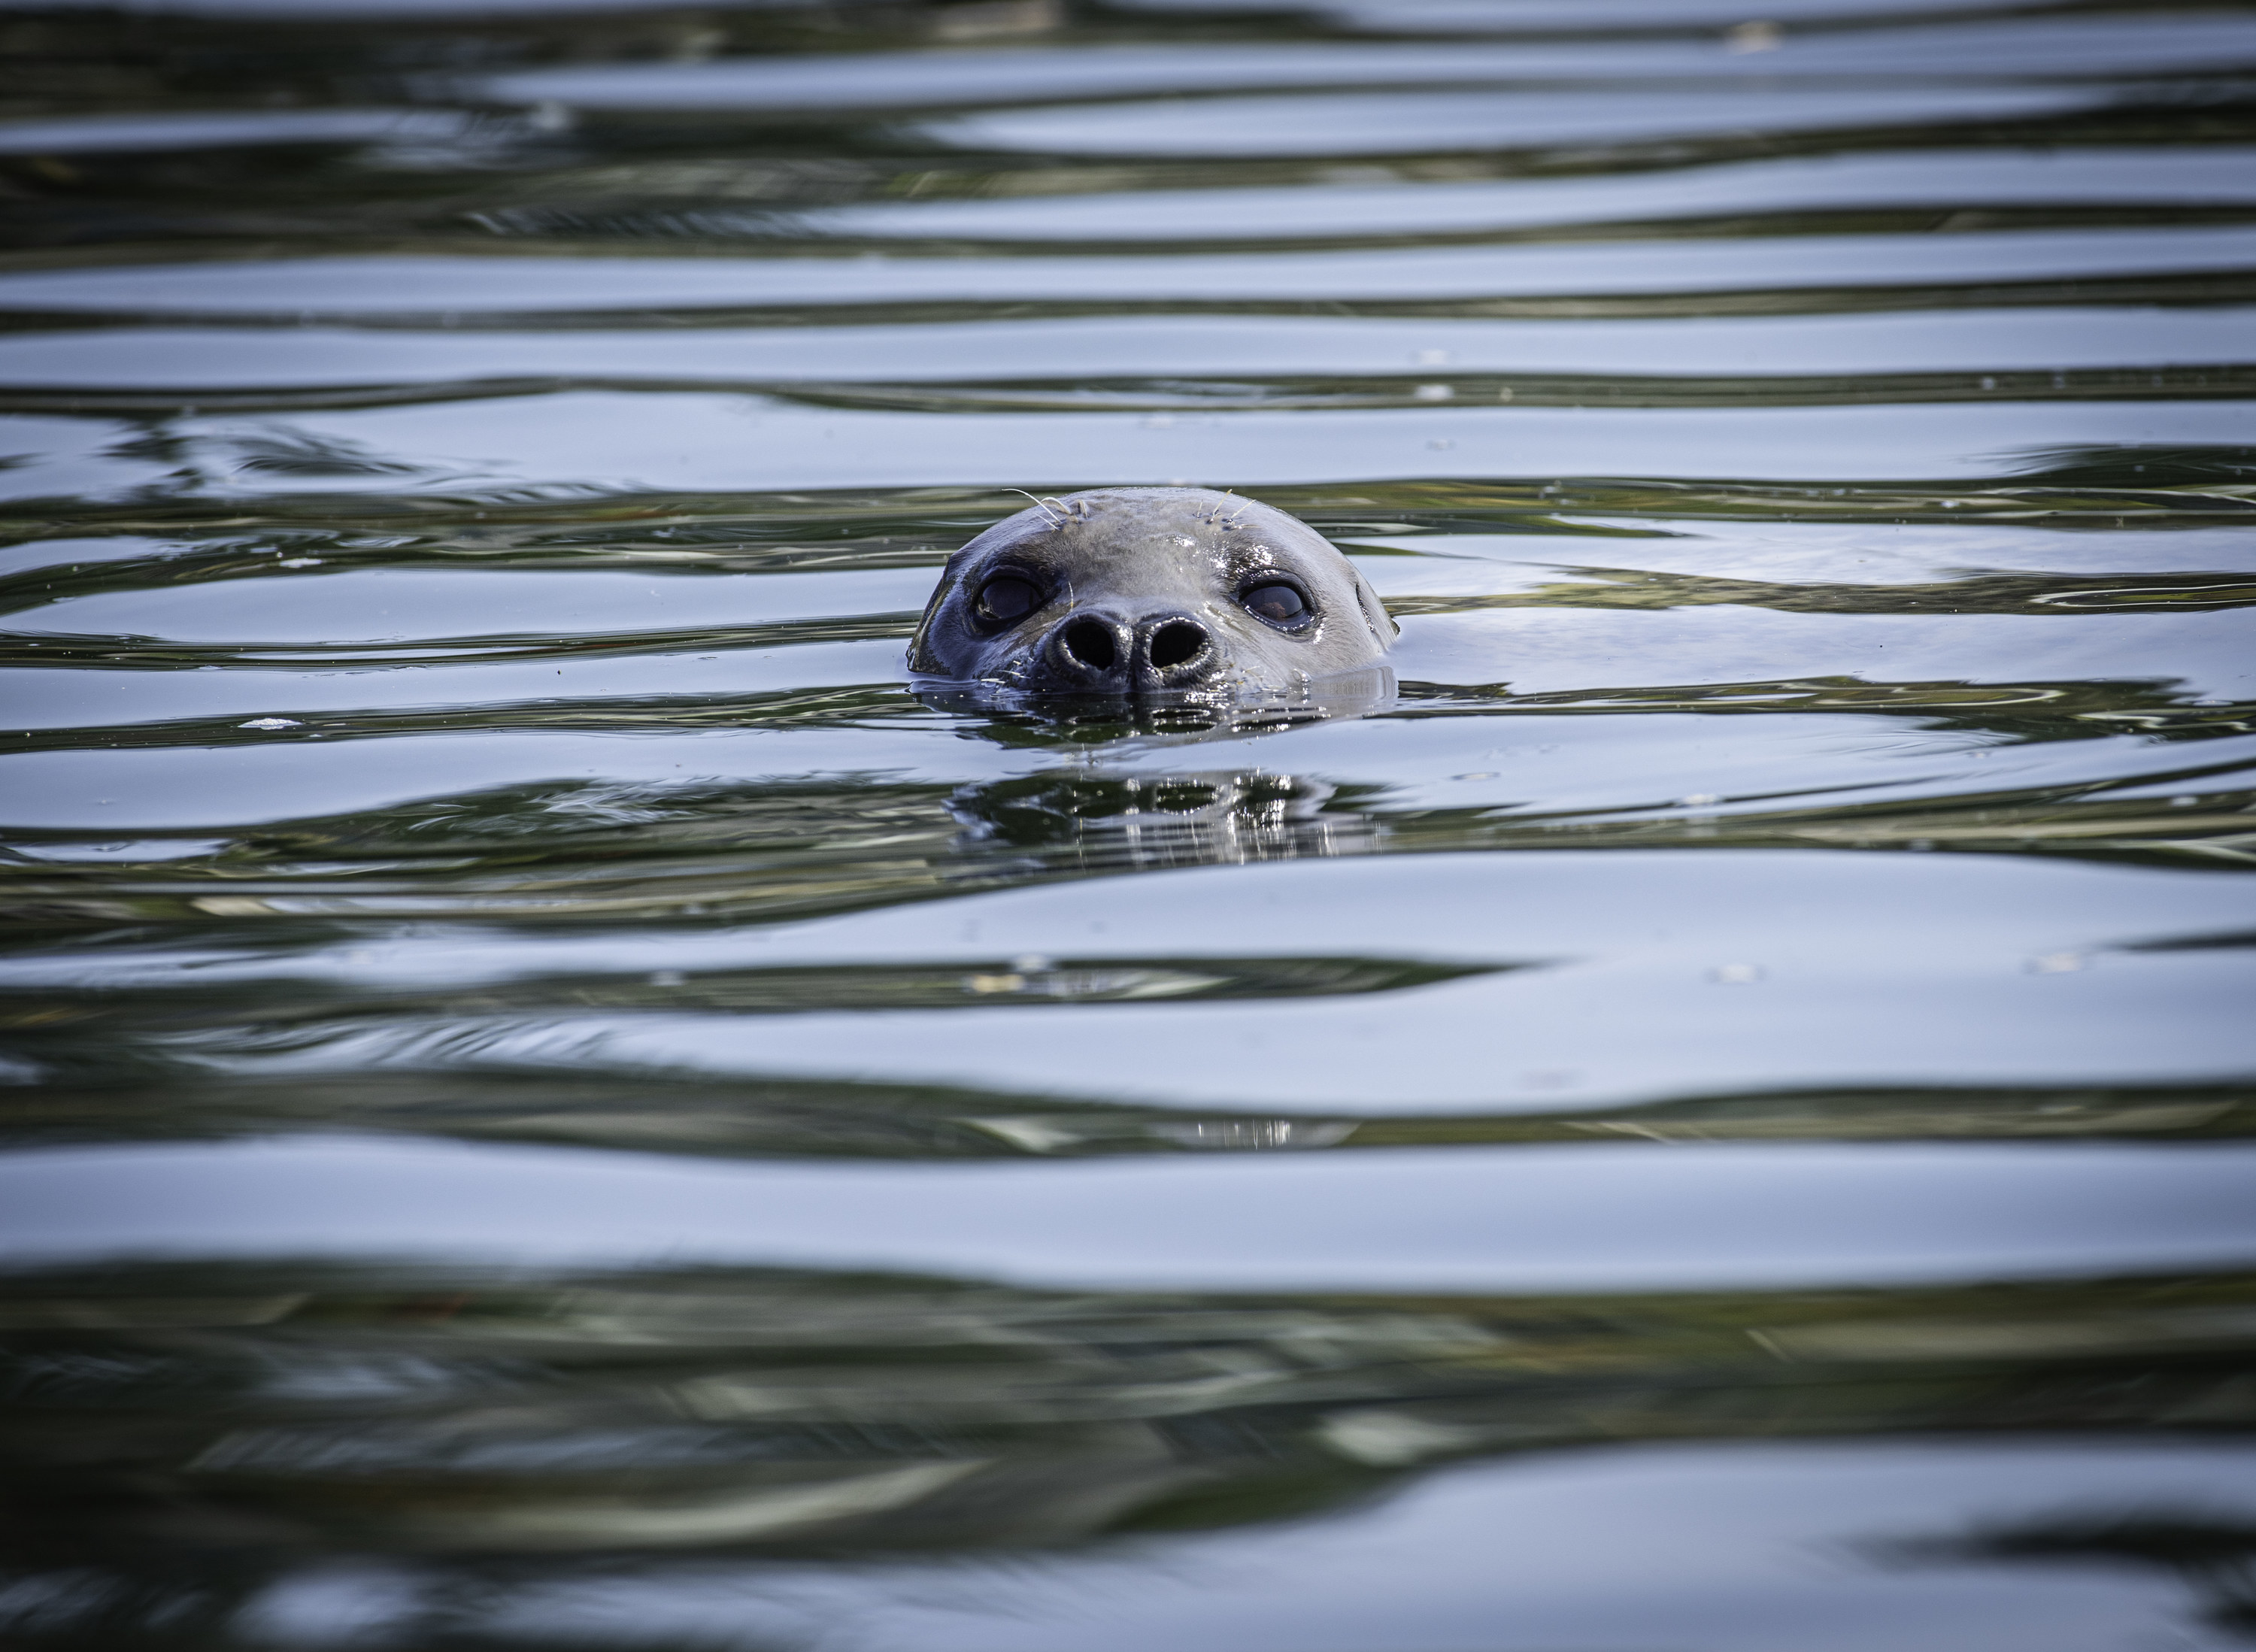 A sea animal emerging from the water